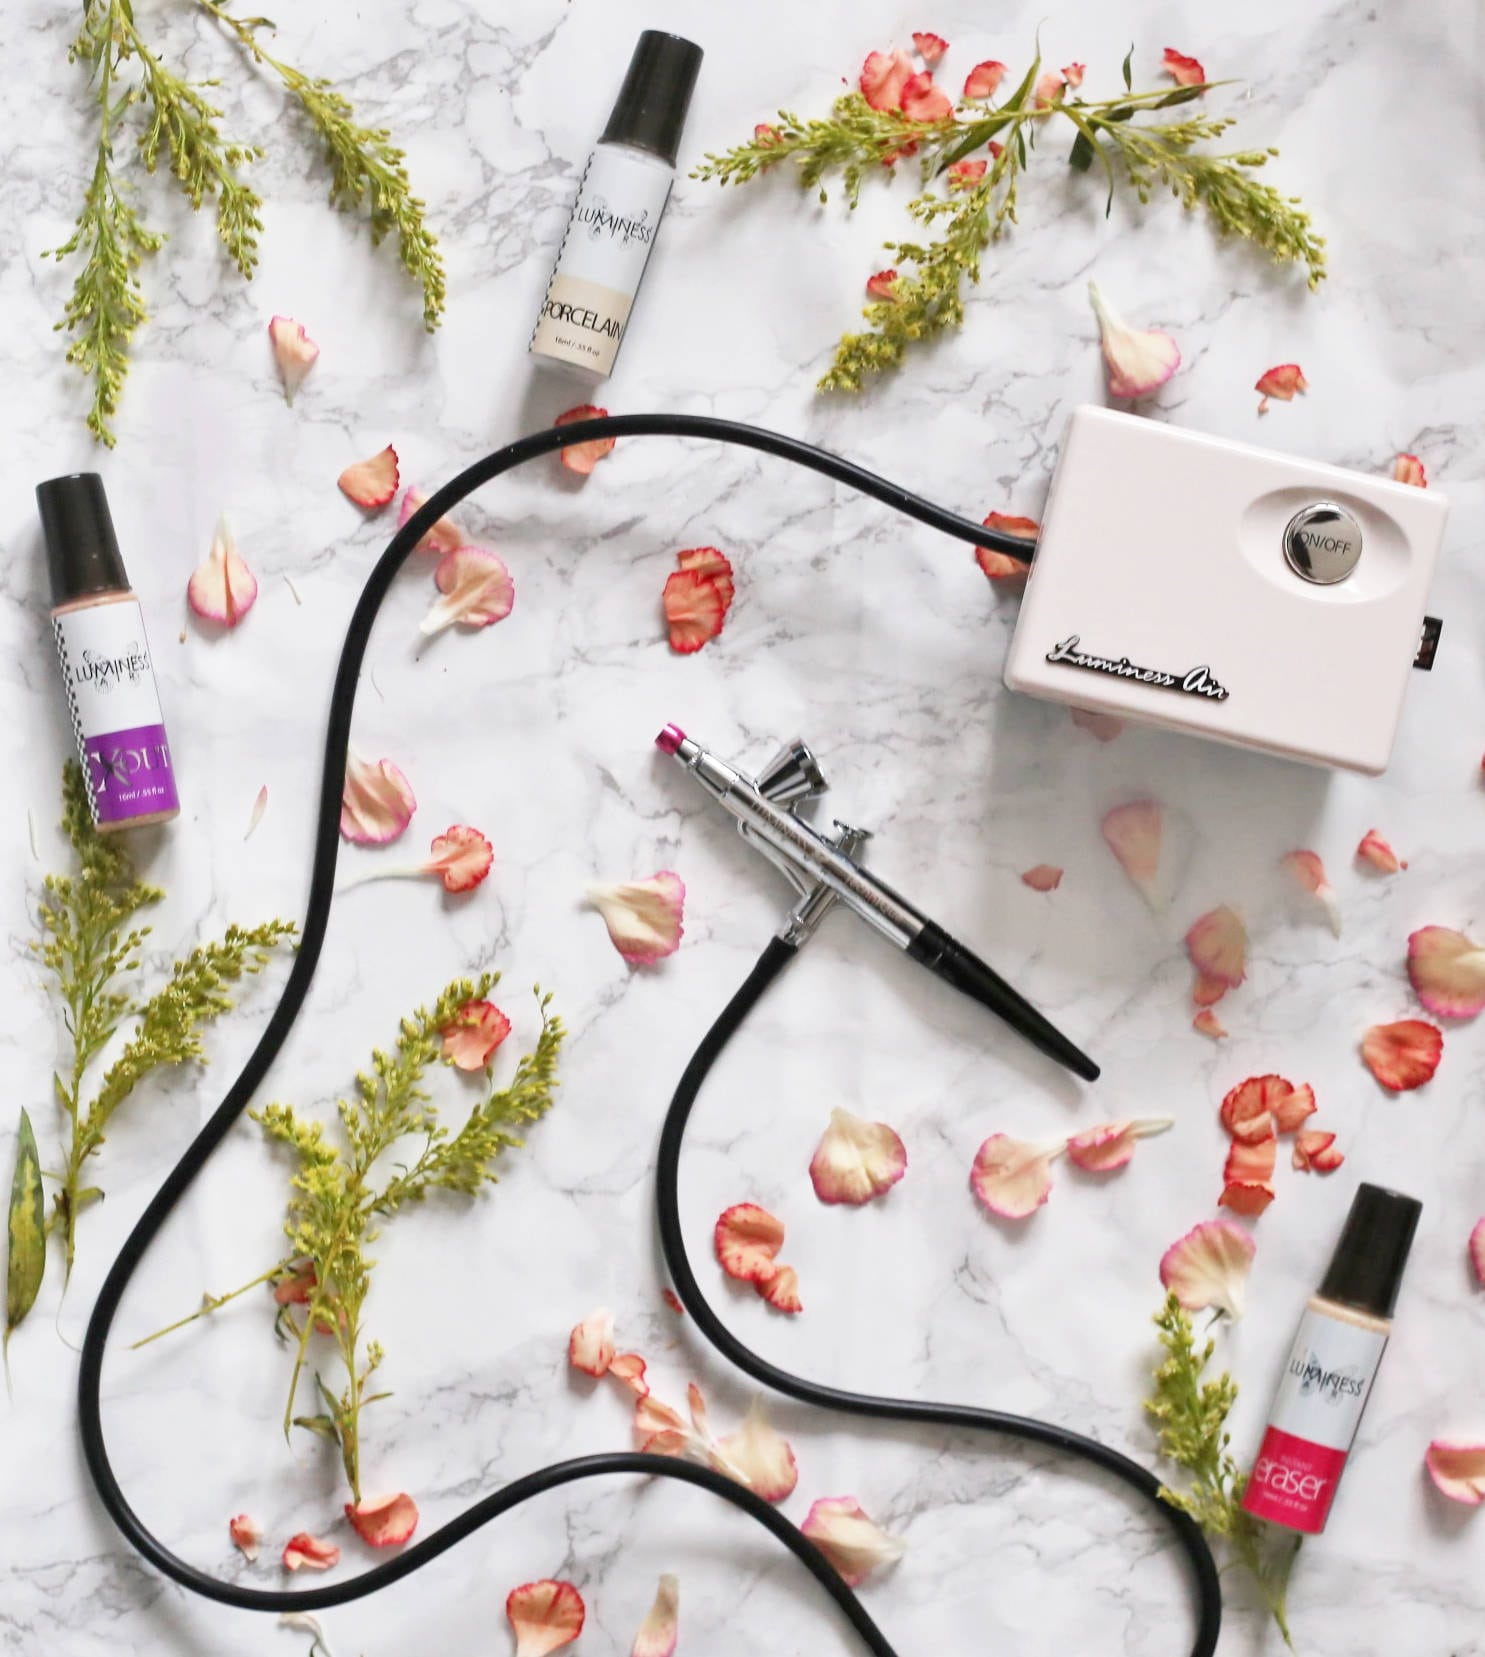 Gift Idea For The Beauty Lover (Who Has Everything)